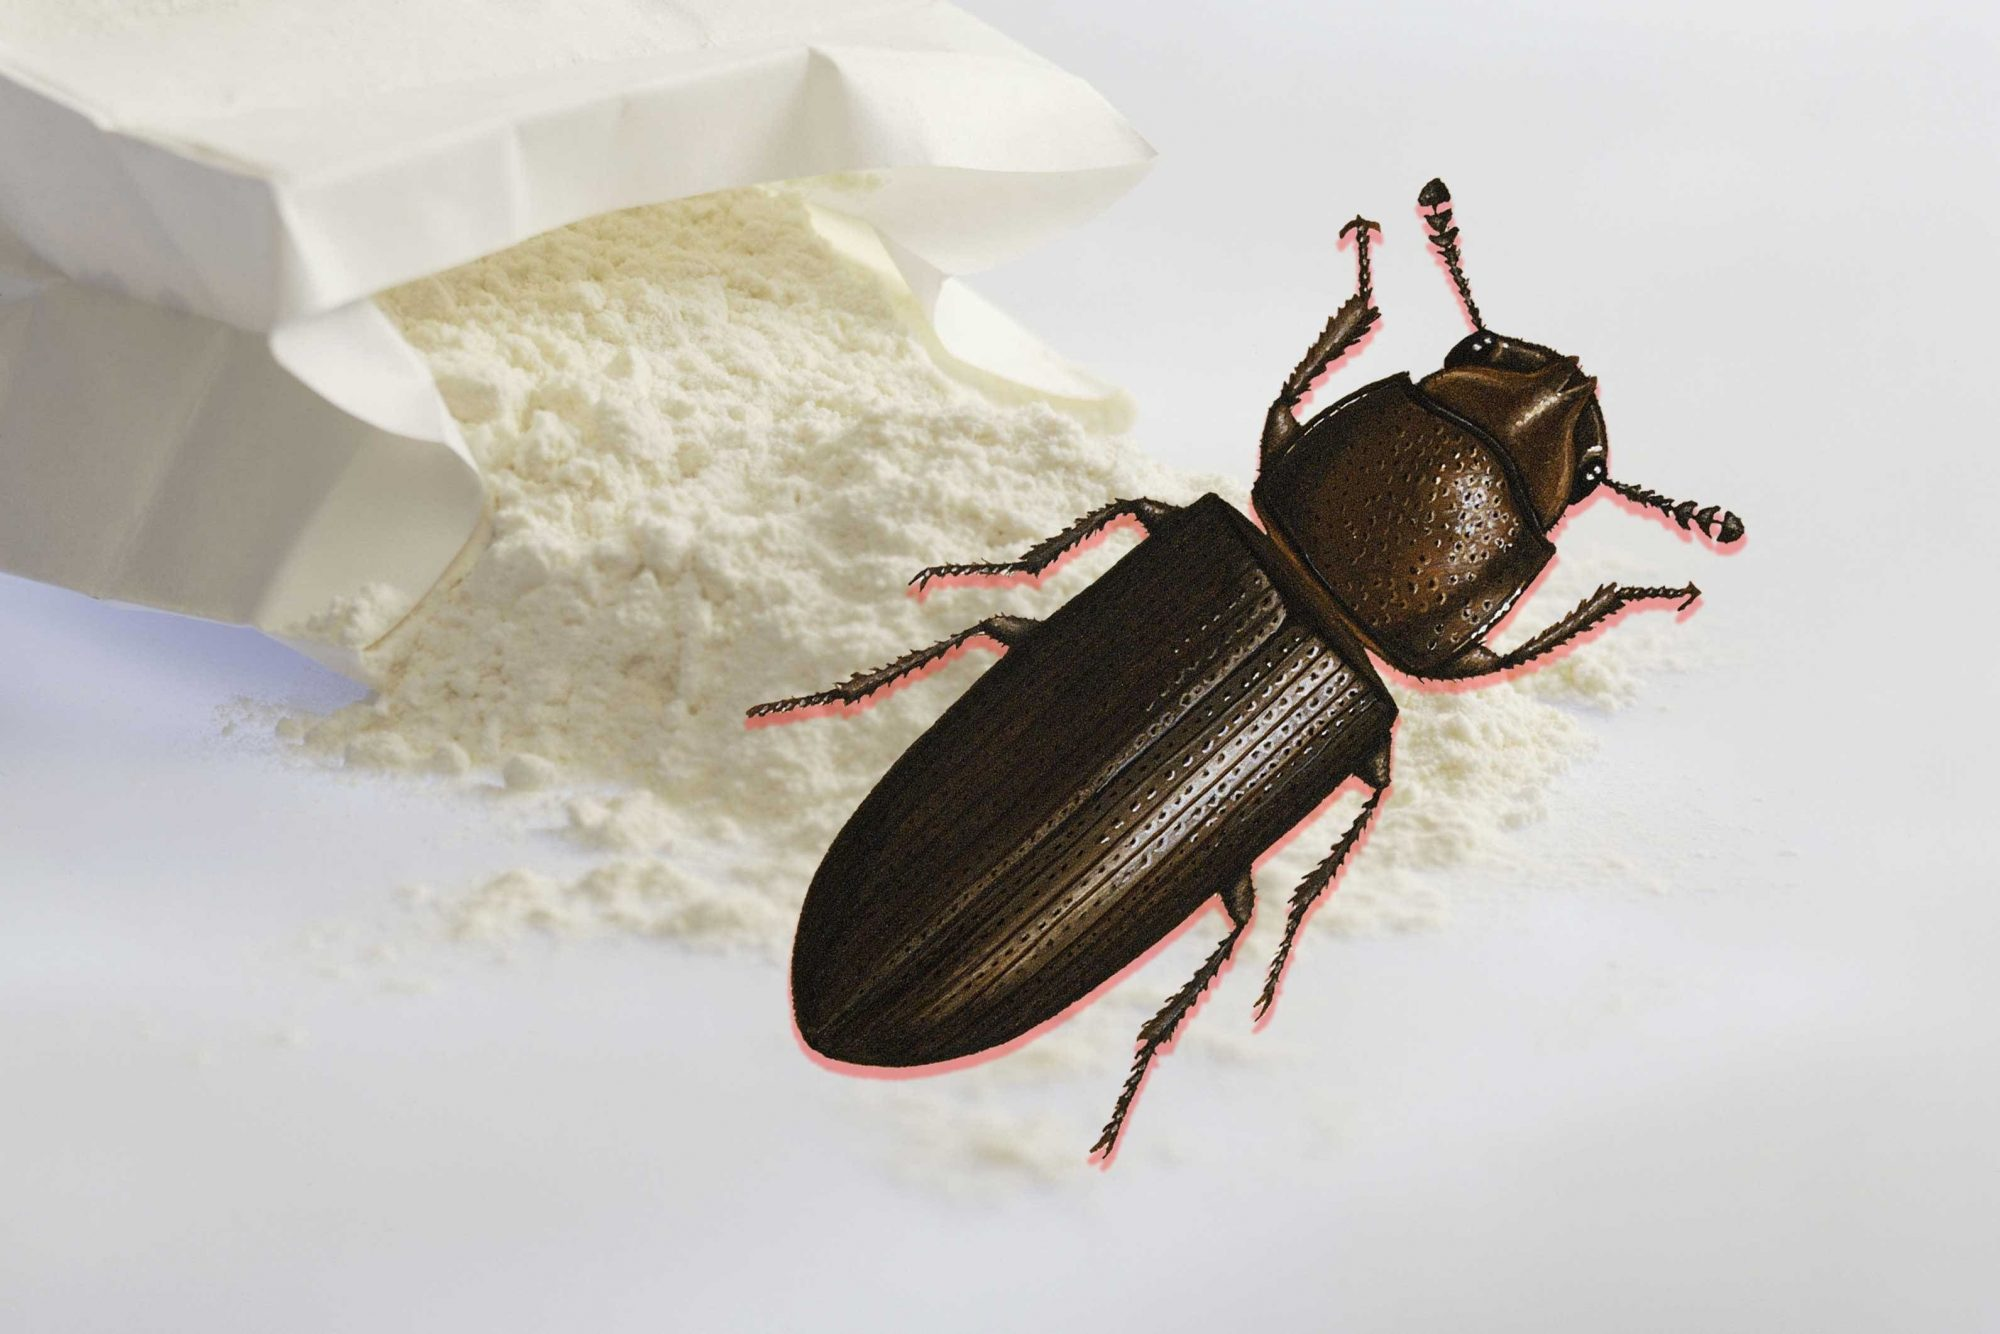 EC: What Are Flour Bugs and Should I Be Worried About Accidentally Eating Them?